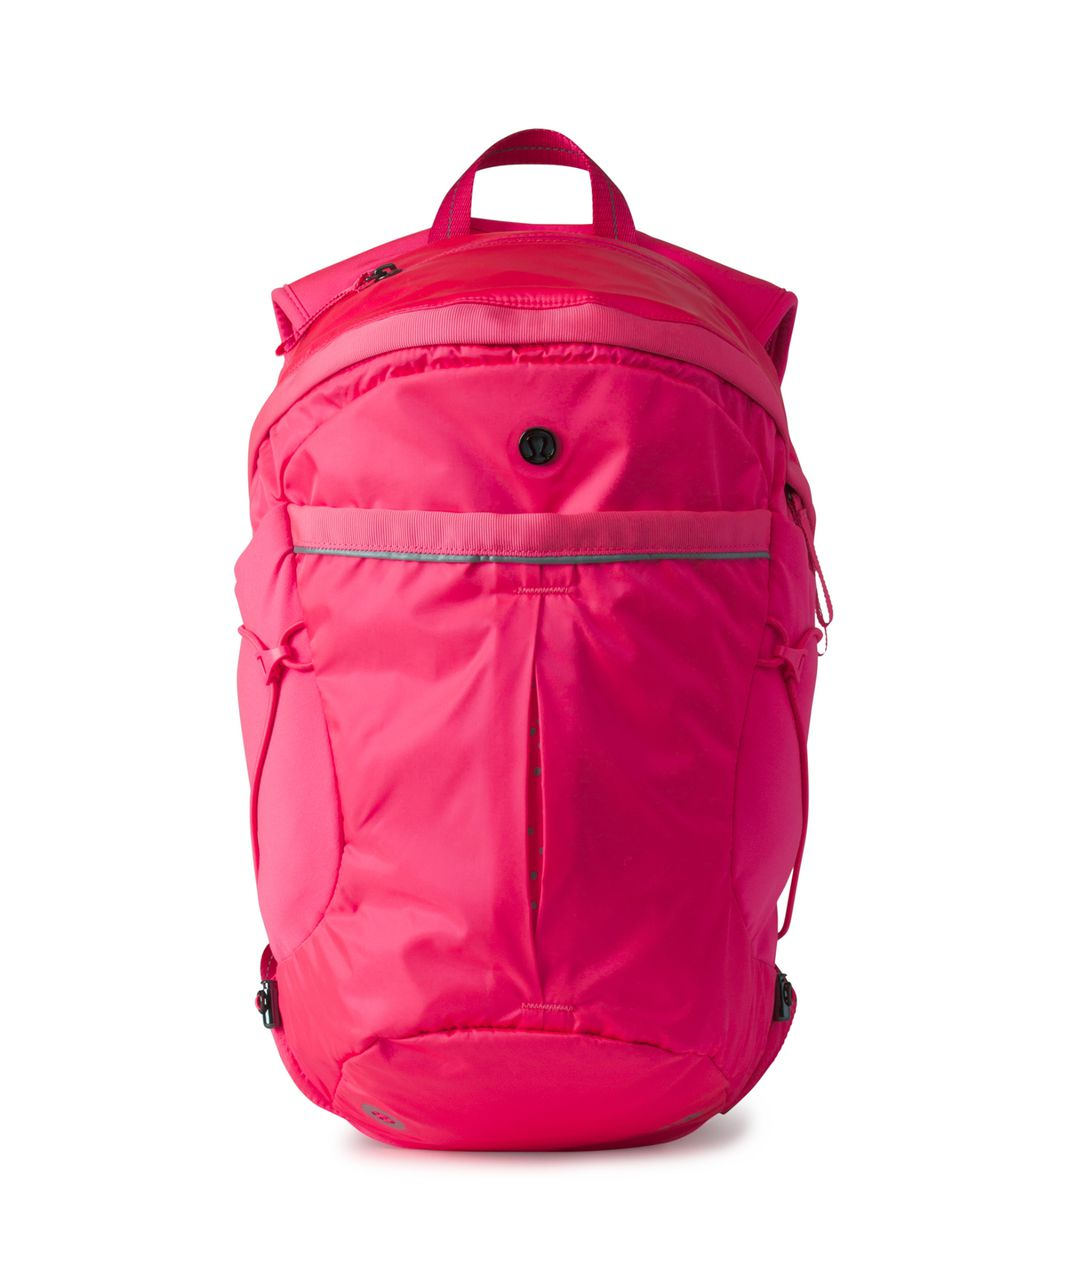 Lululemon Run All Day Backpack - Neon Pink